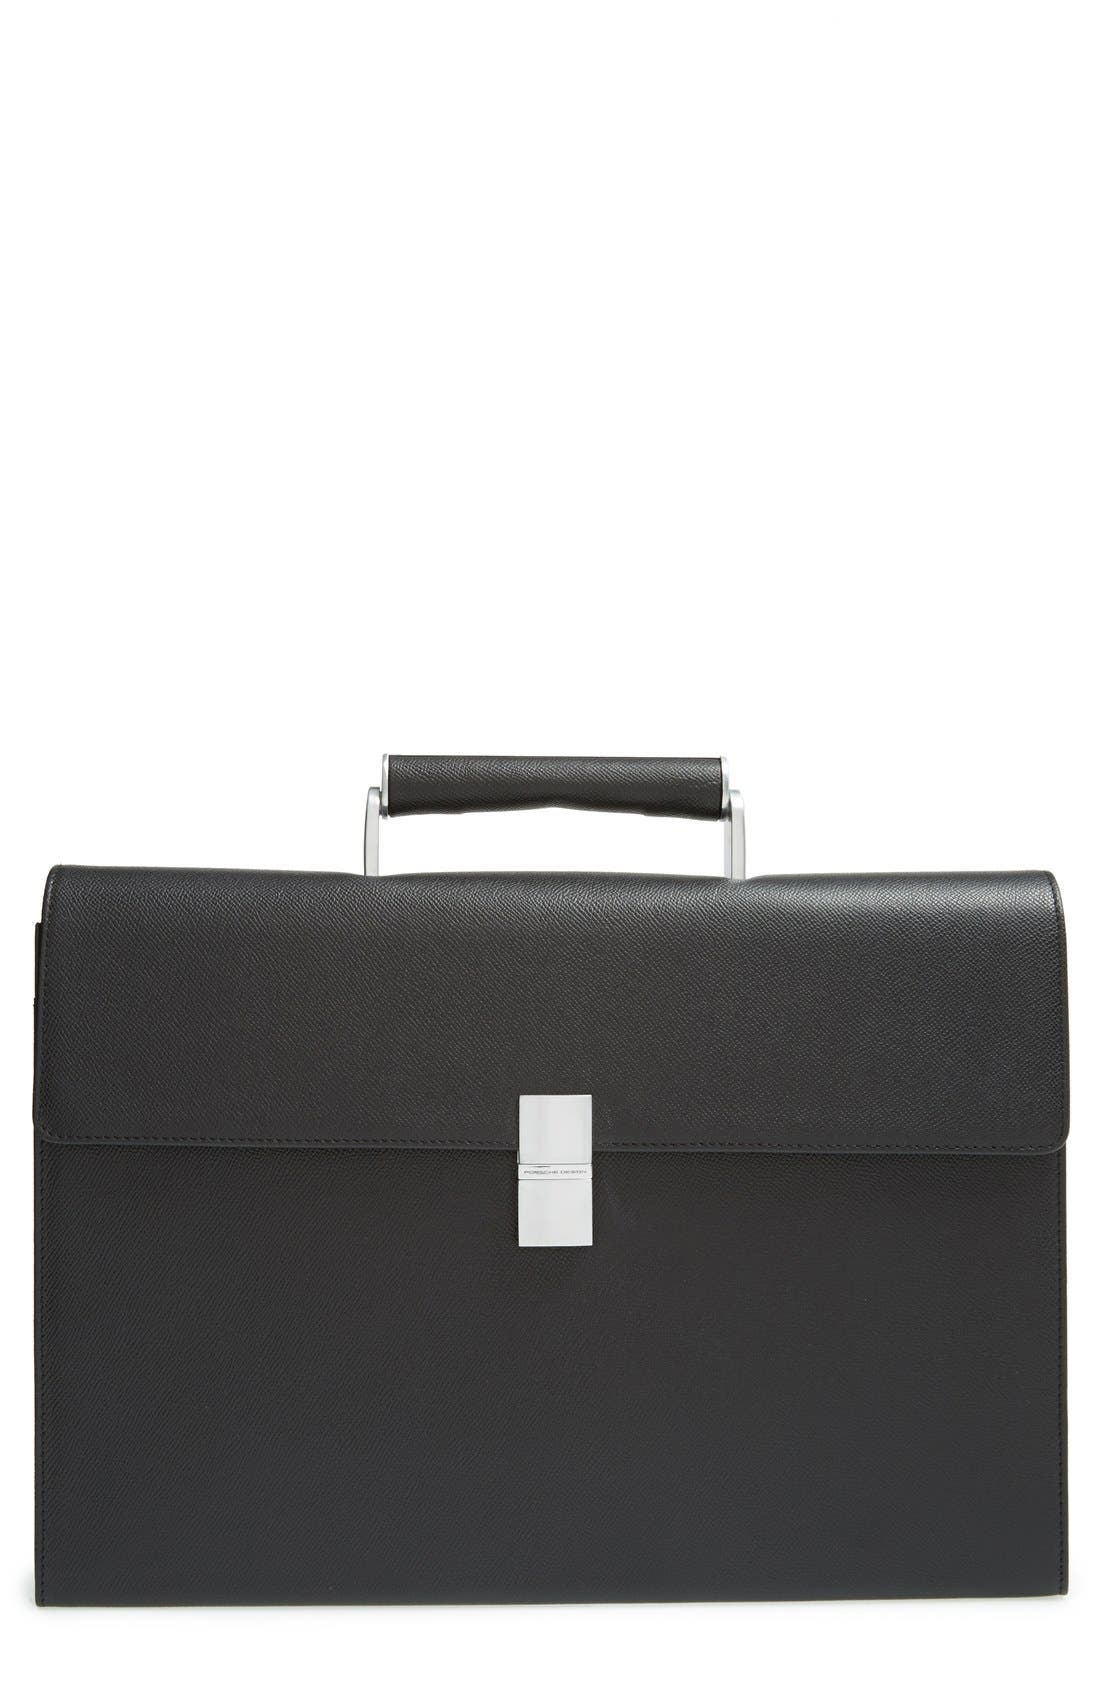 French Classic 3.0 Leather Briefcase,                         Main,                         color,